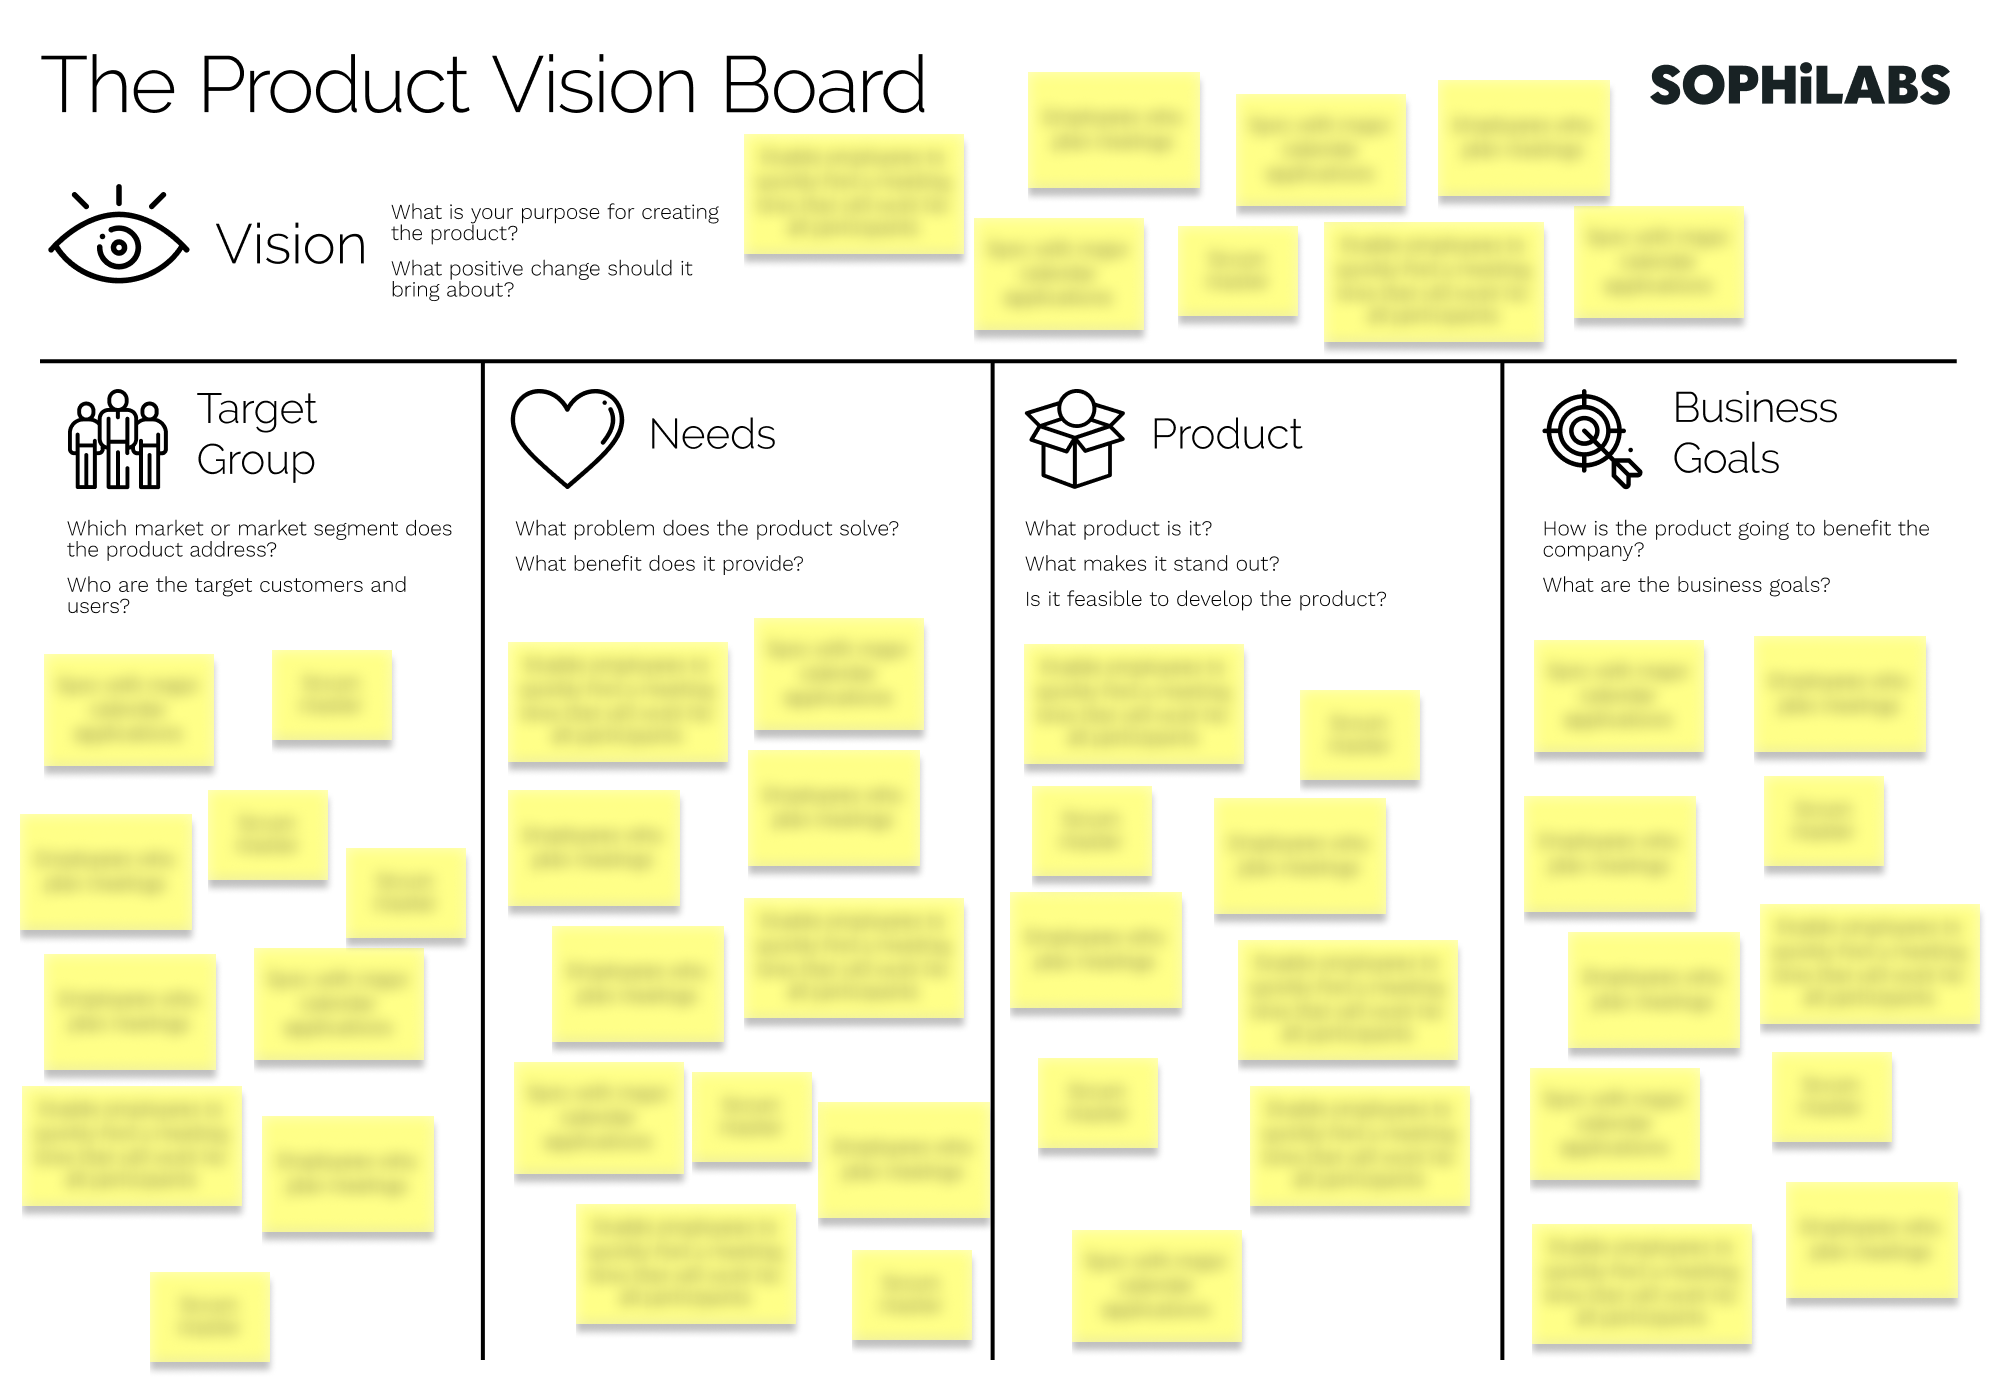 Consolidated version of the Vision Board